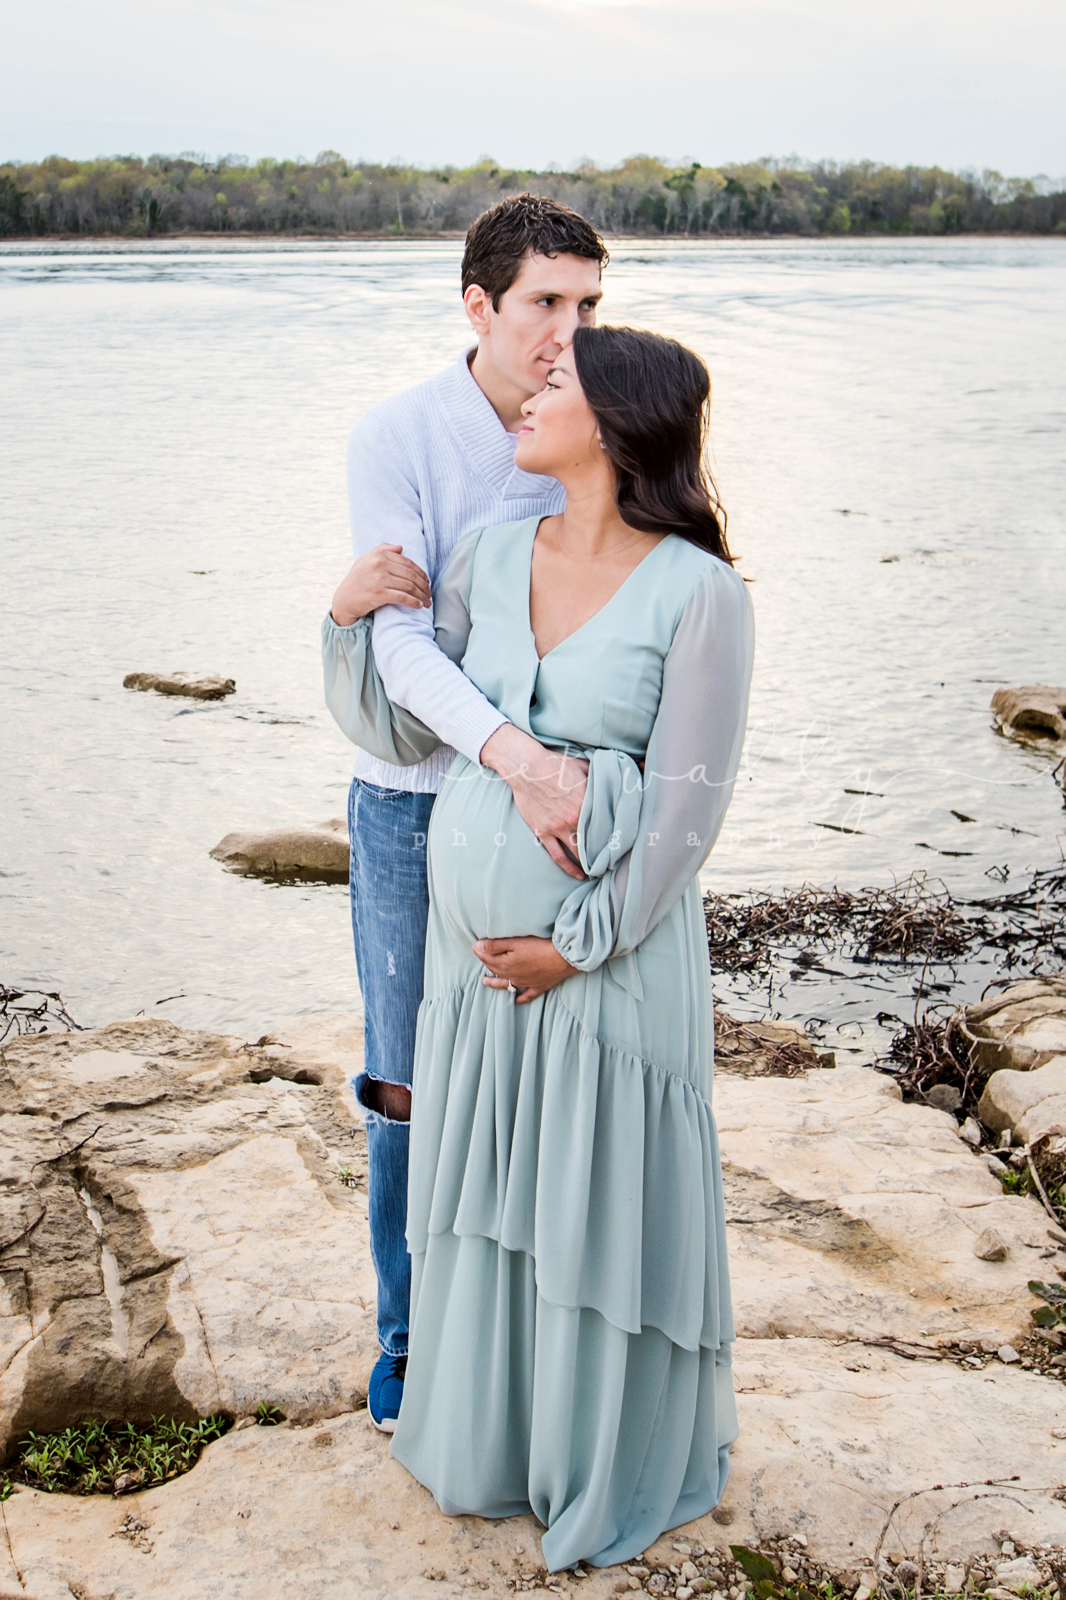 A quiet moment | Lakeside maternity photos | Sweet Wally Photography in Nashville, TN